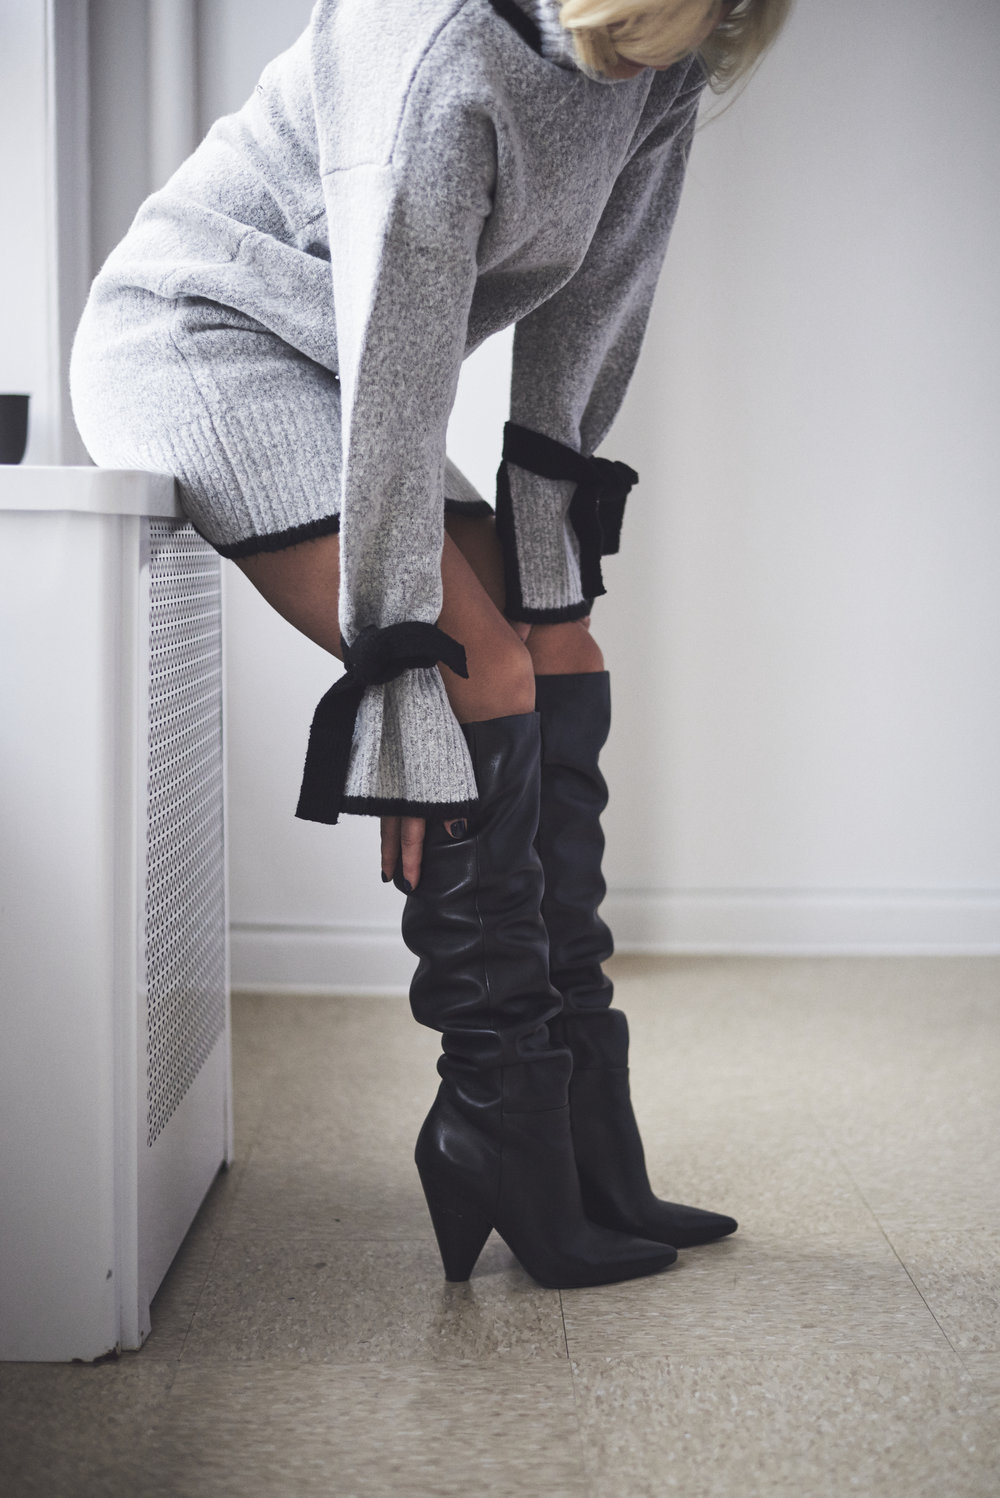 Shop The Best Slouchy Boots to Fit Your Style - The perfect investment for a wear-it-now winter purchase, but a practical transitional boot for the spring.Photo Credit: Emerald Baker